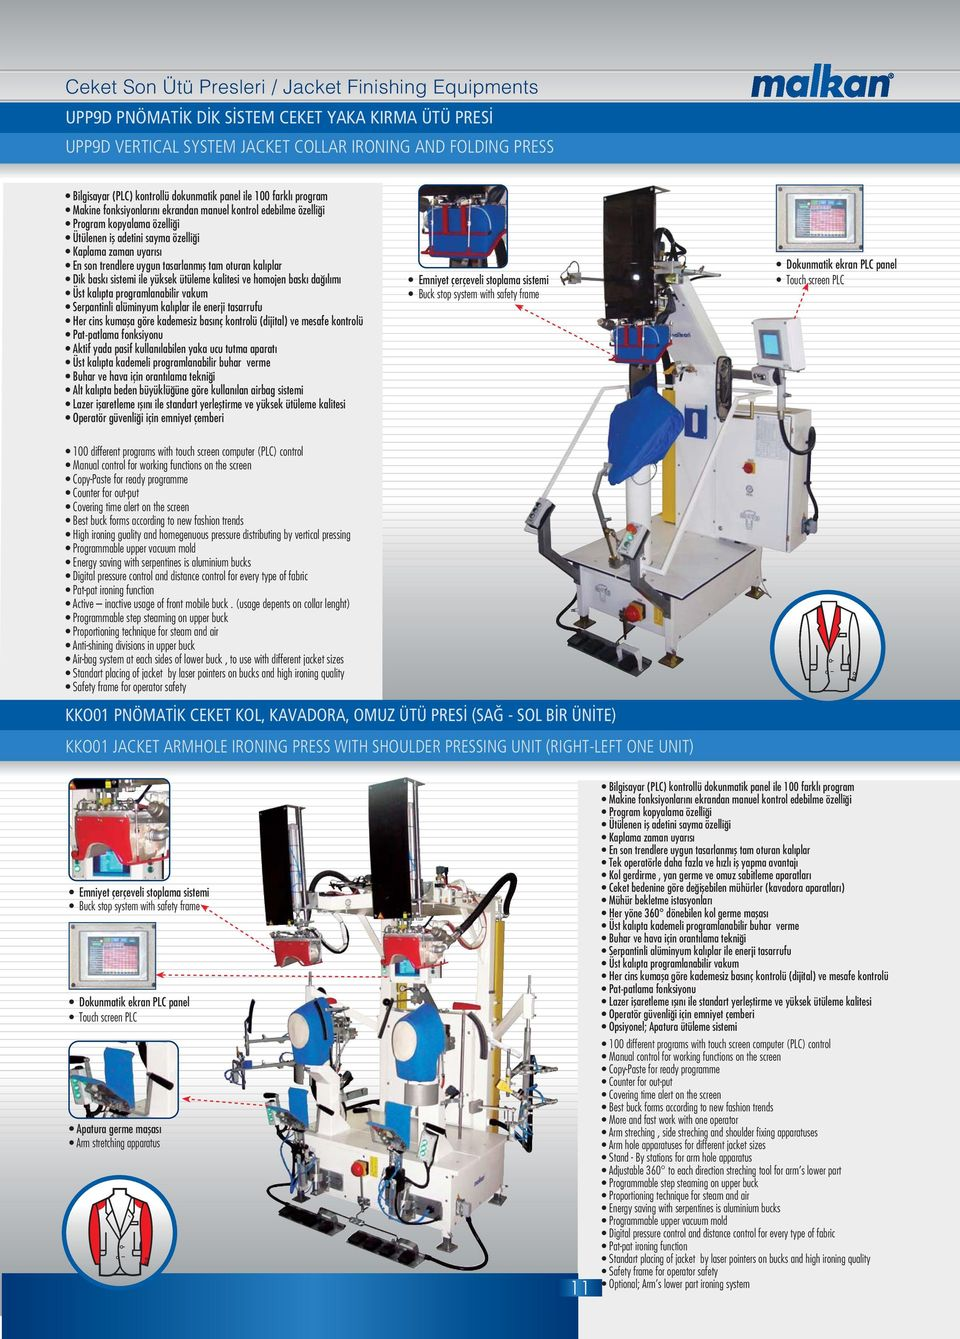 verme Alt kal pta beden büyüklü üne göre kullan lan airbag sistemi High ironing guality and homegenuous pressure distributing by vertical pressing Programmable upper vacuum mold Active inactive usage